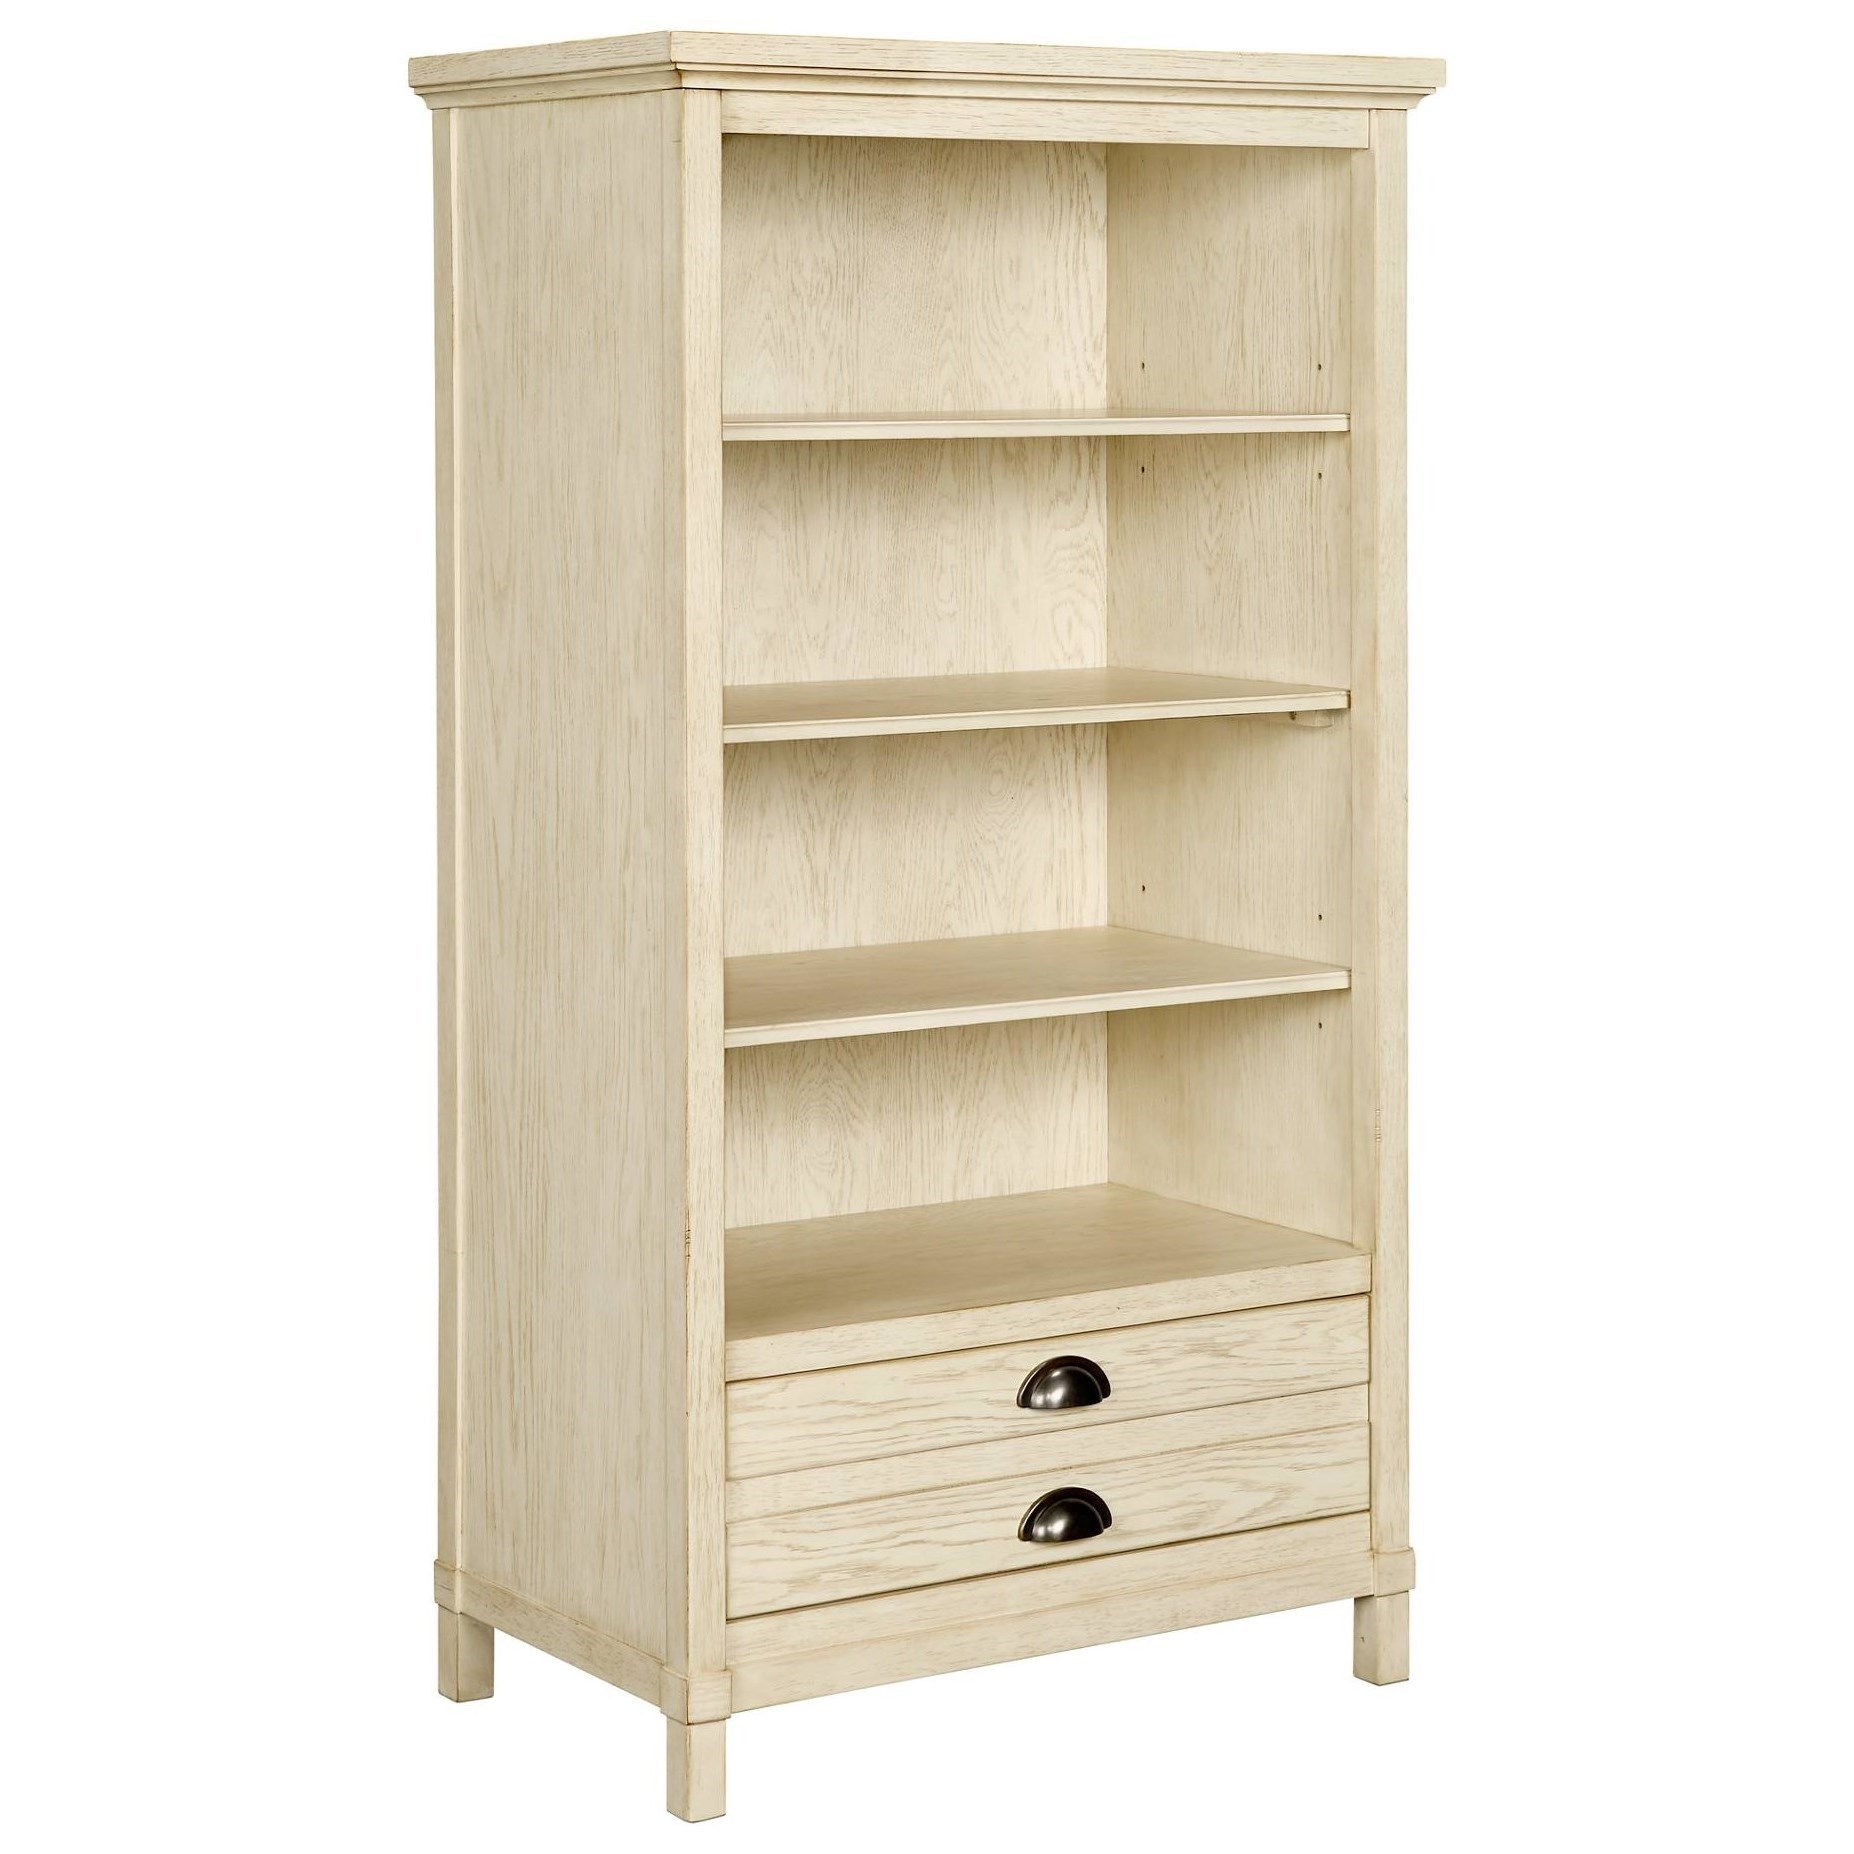 Stone & Leigh Furniture Driftwood Park Bookcase - Item Number: 536-23-13